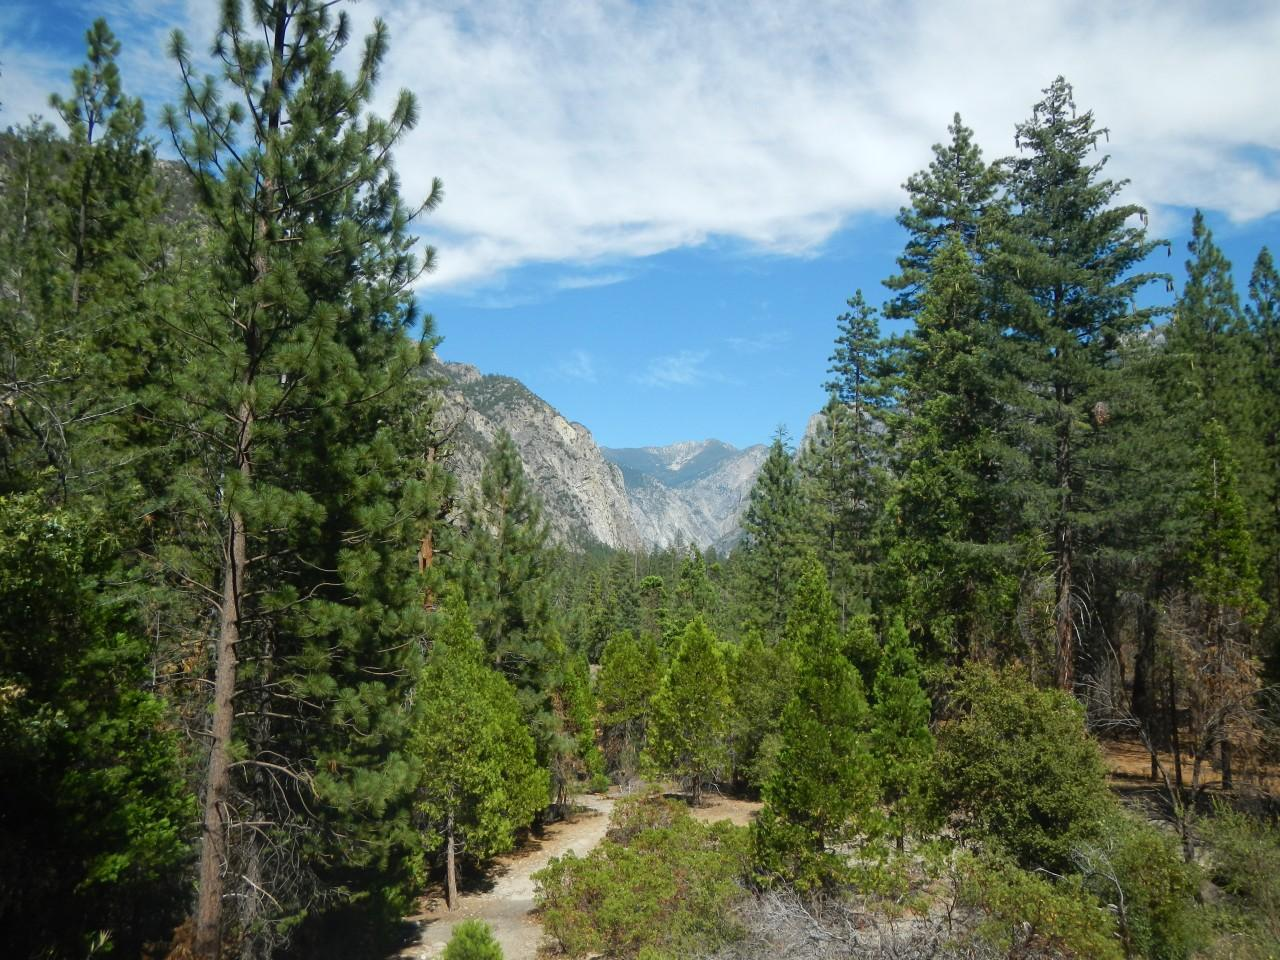 yosemite national park essay